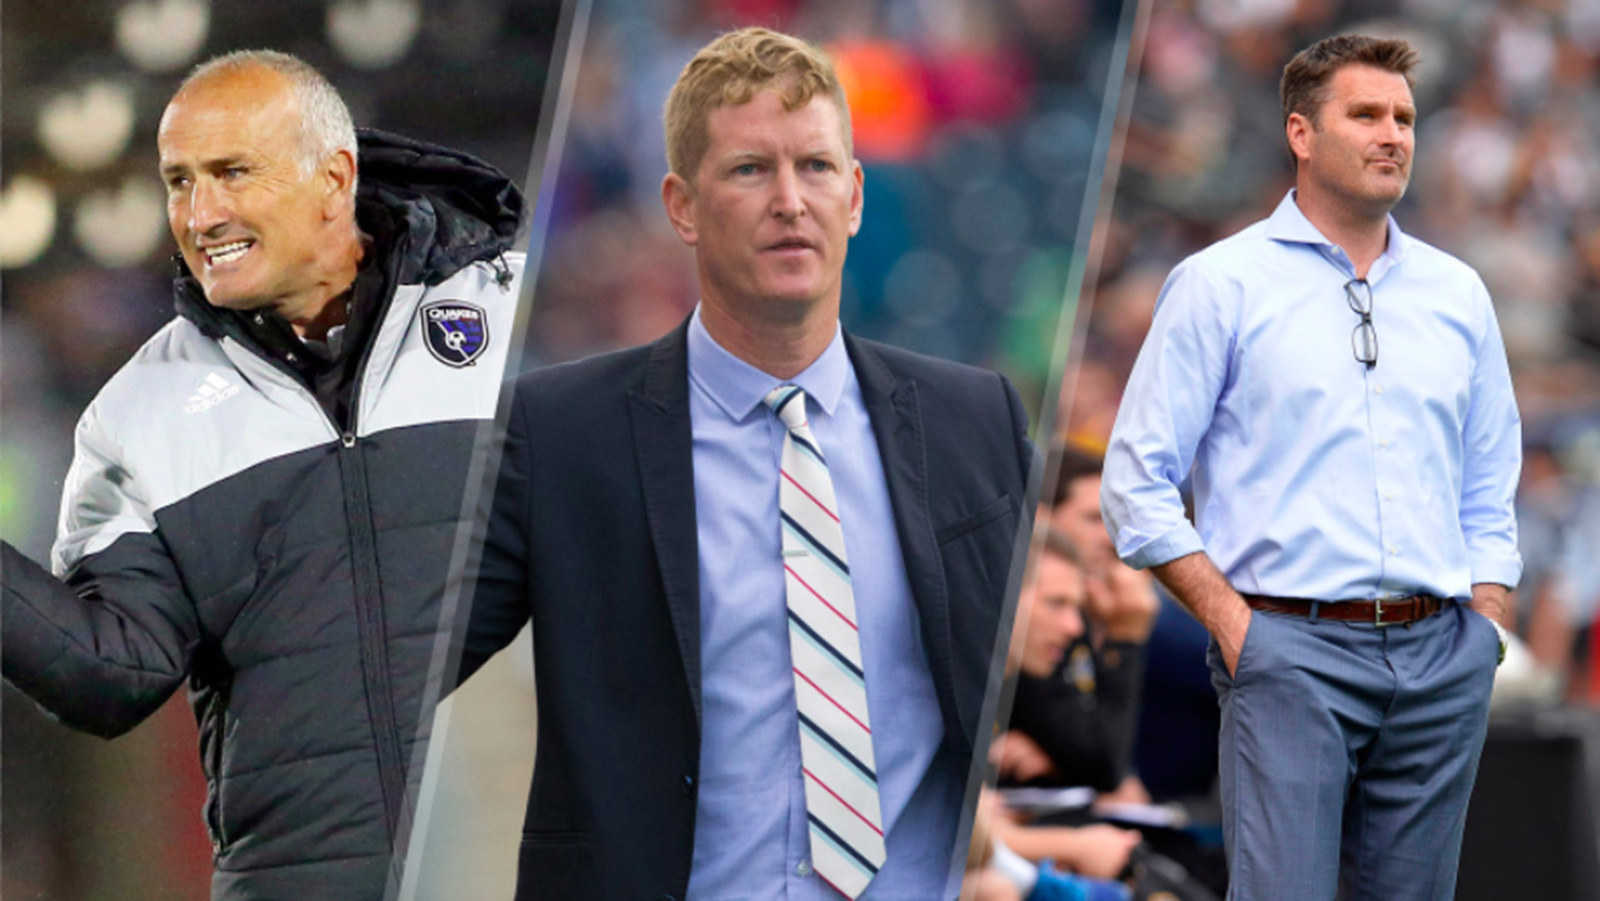 MLS coach split hot